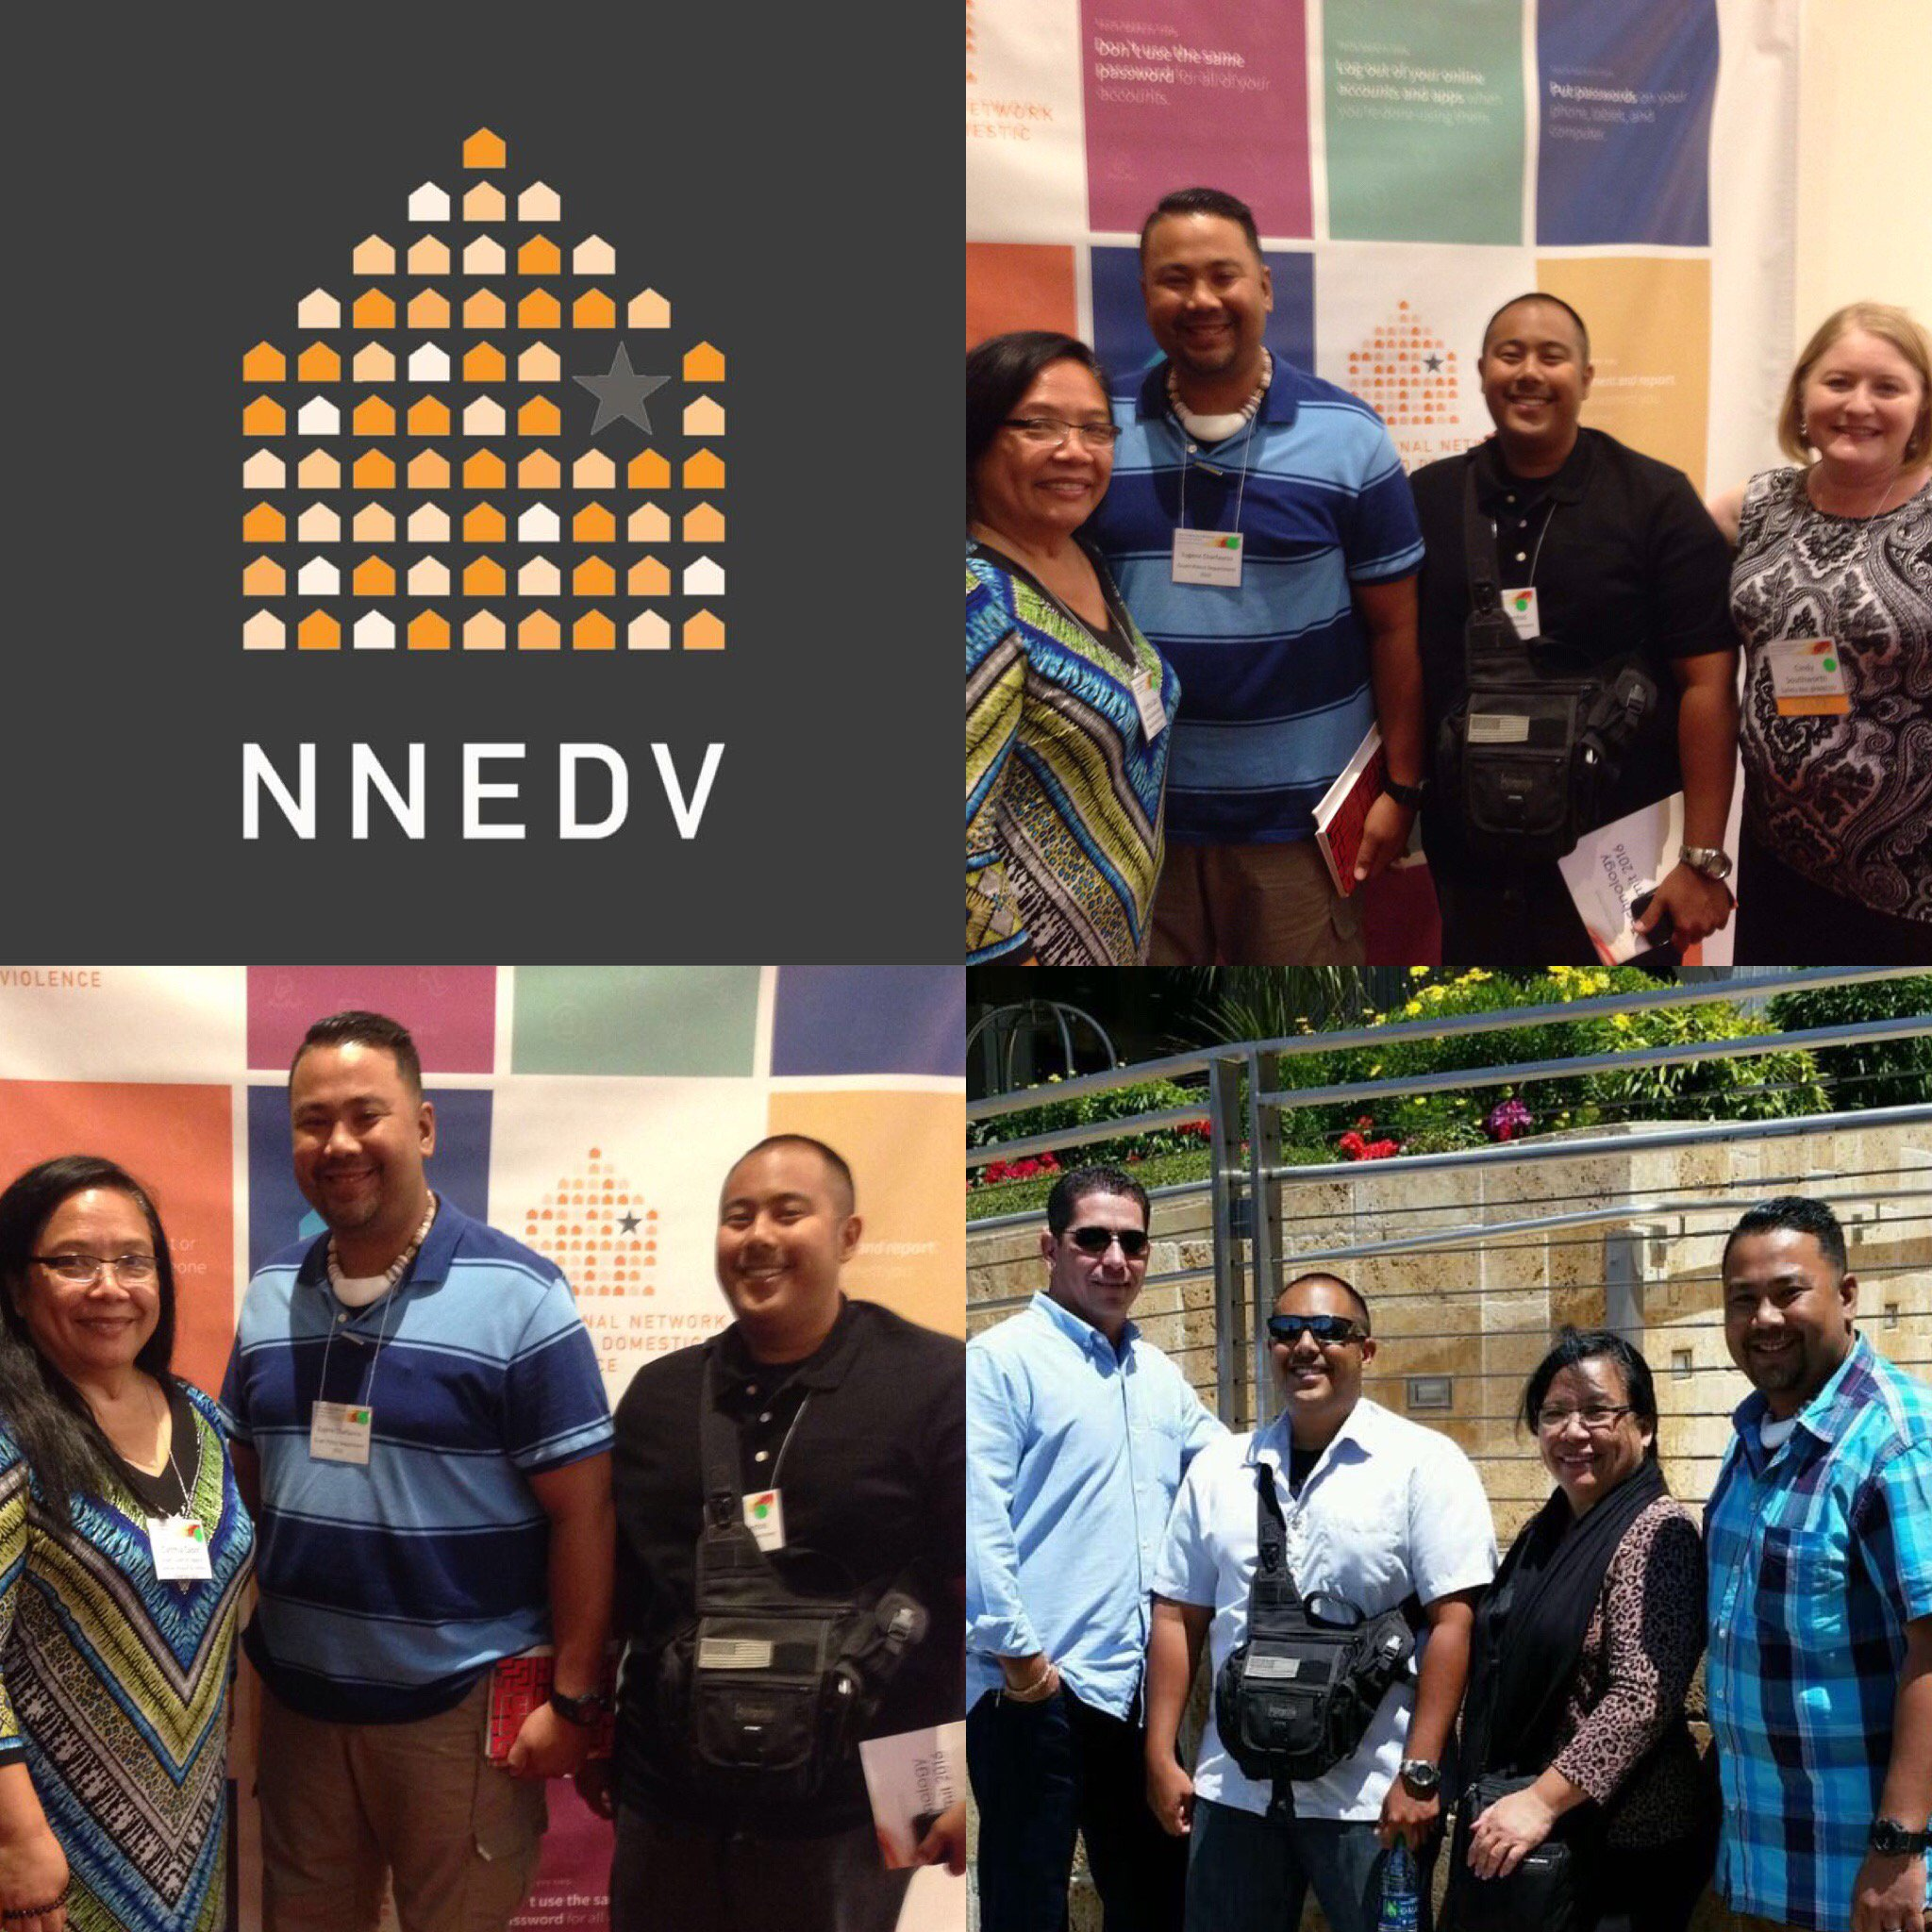 The Guam team attending @nnedv Safety Net's 4th Annual Technology Summit. #techsummit16 #techsafety https://t.co/YAMkwKcI3S